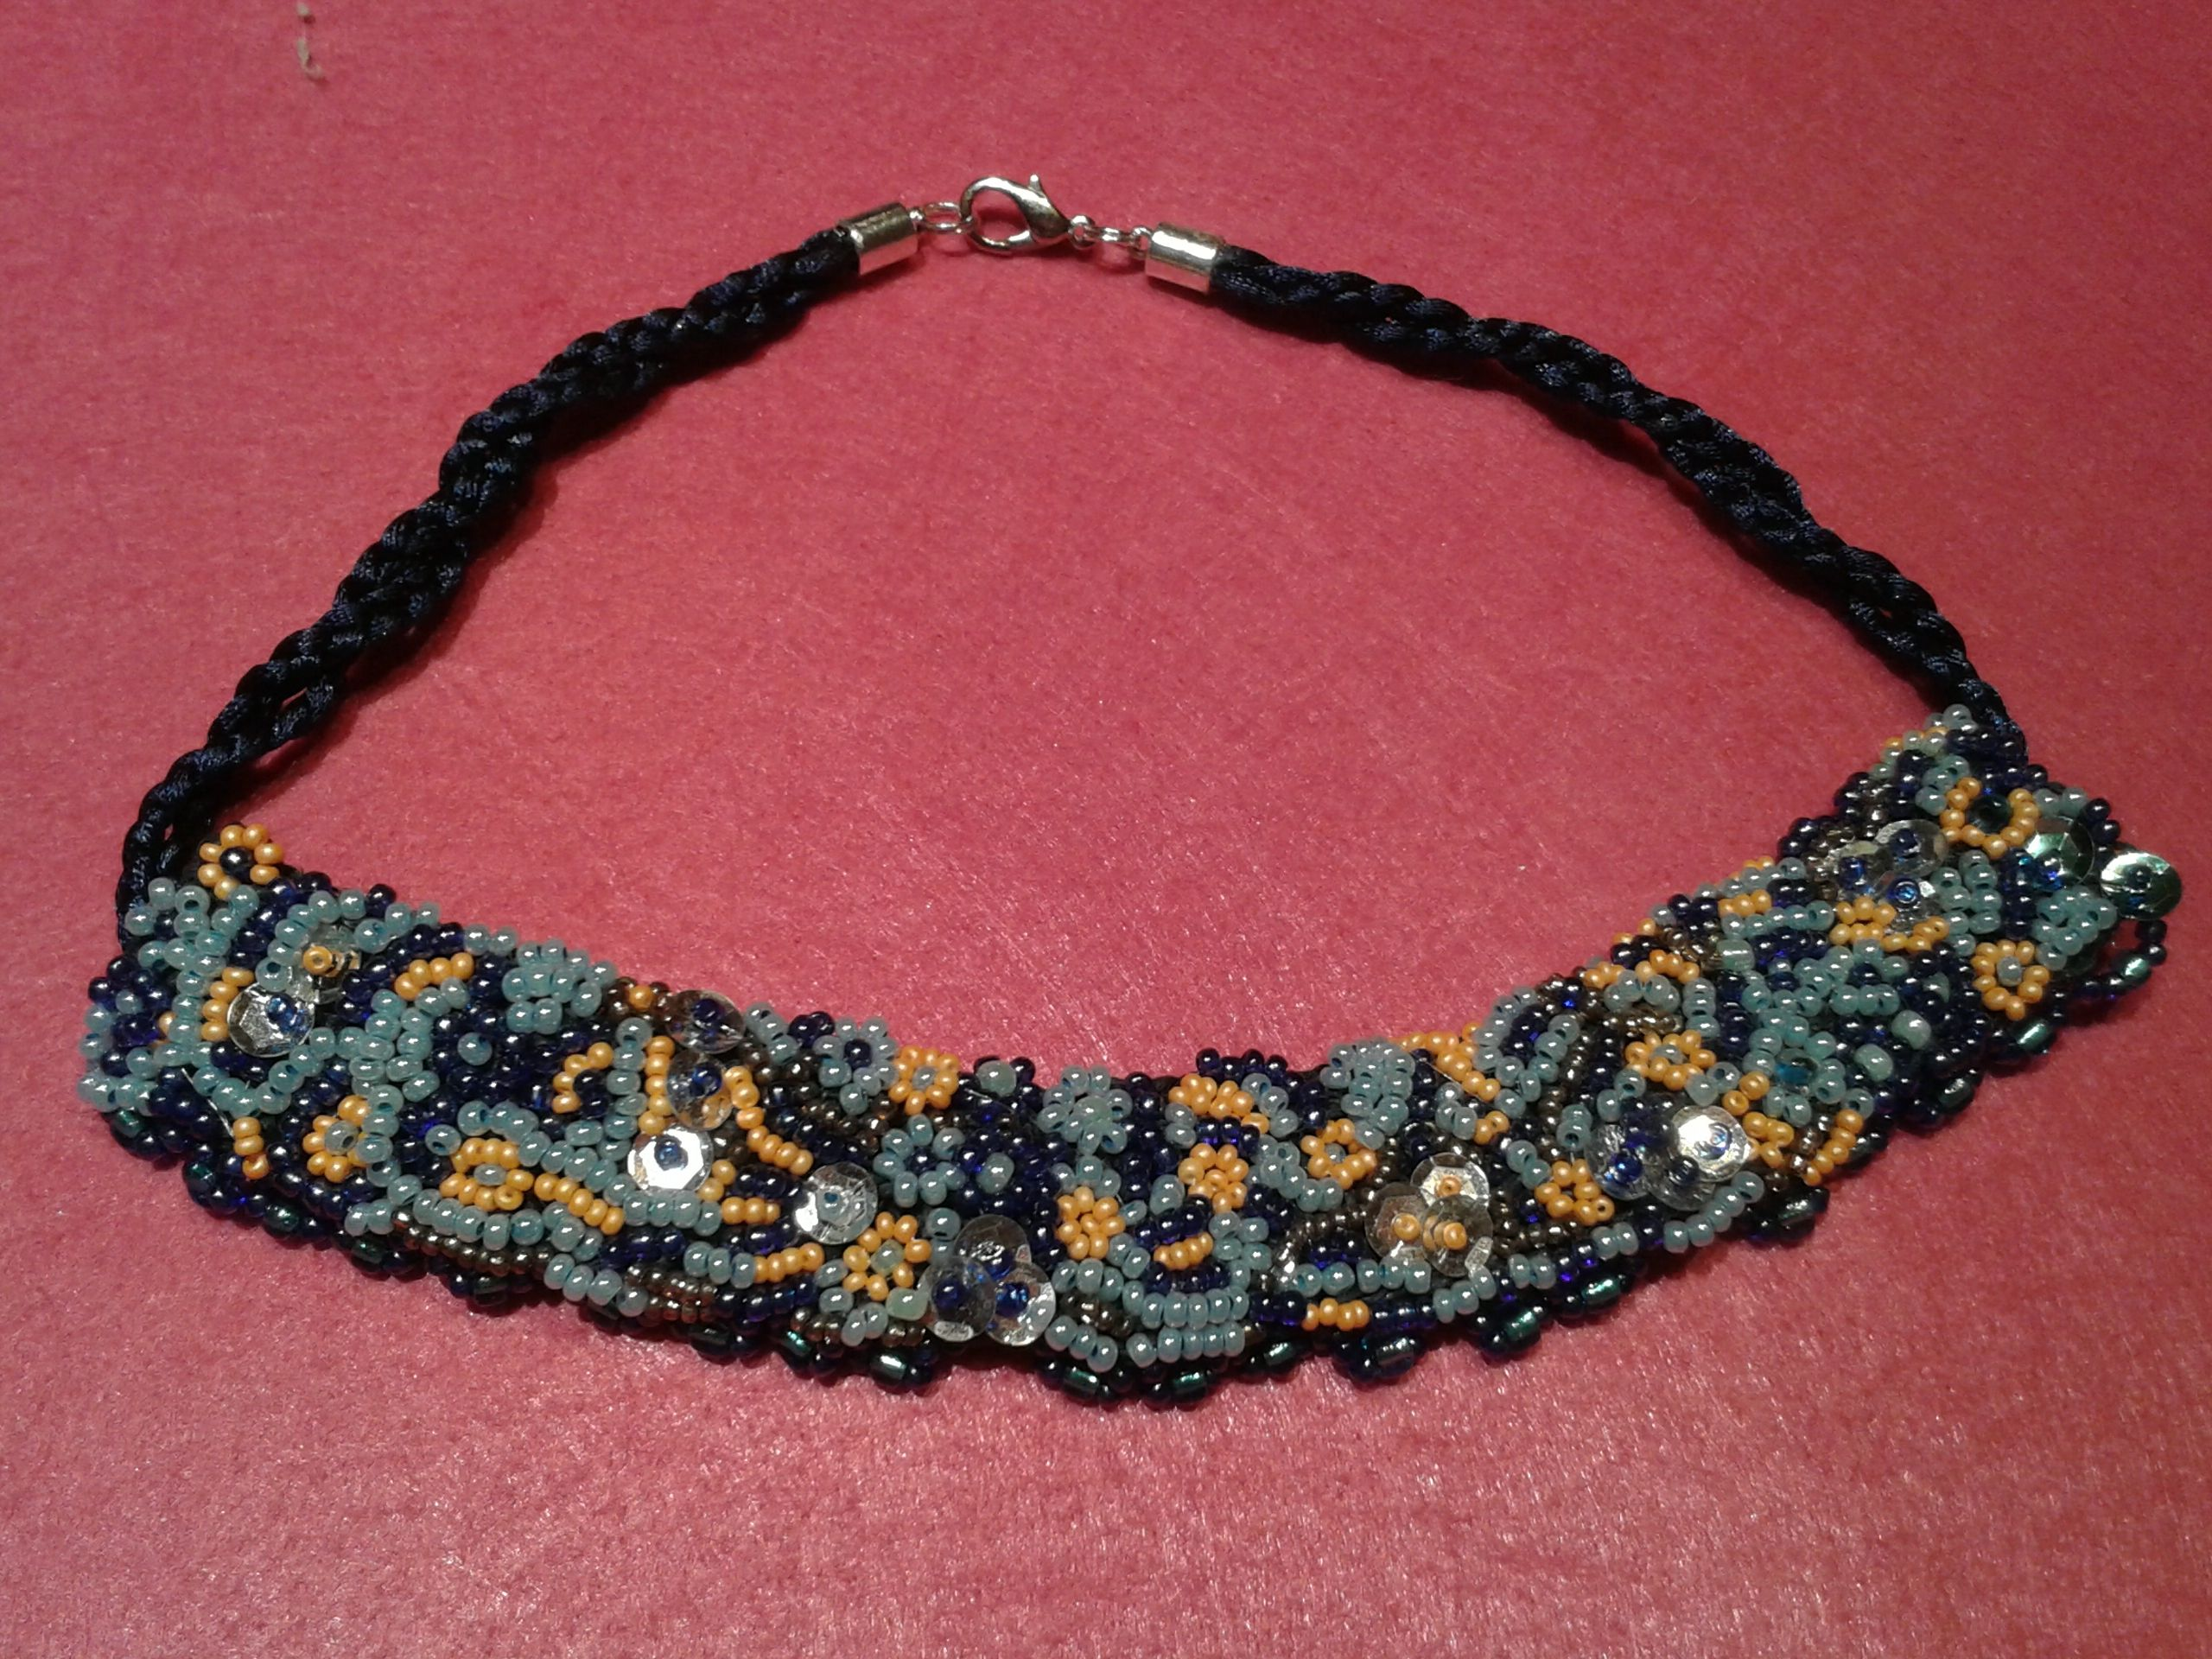 COLLAR CORTO BORDADO CON MICROPERLAS